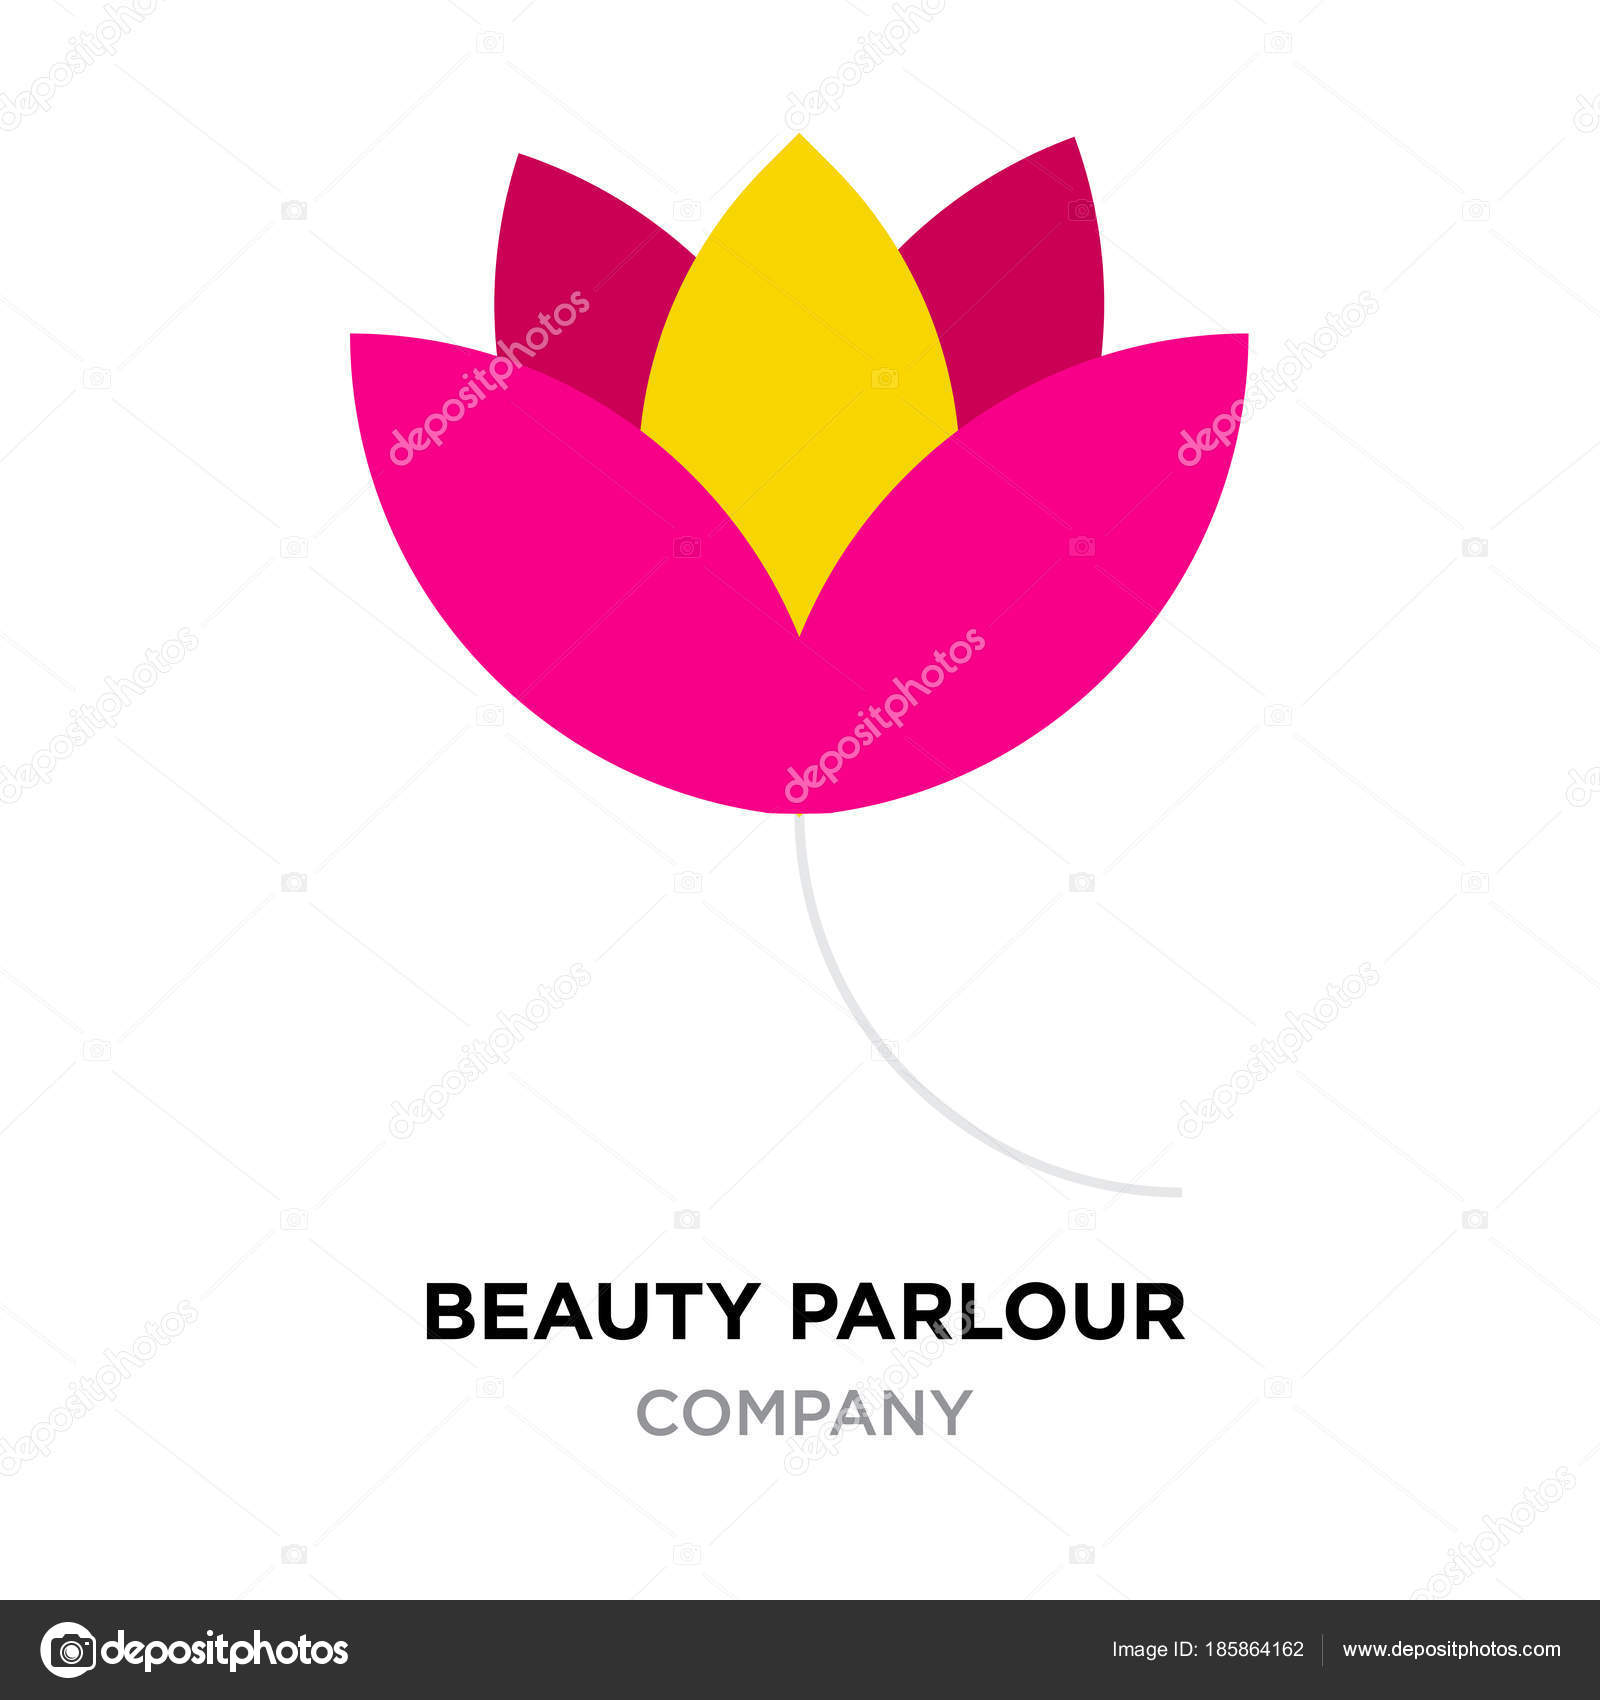 Beauty Parlour Logo For Company Red And Yellow Flower Vector Ic